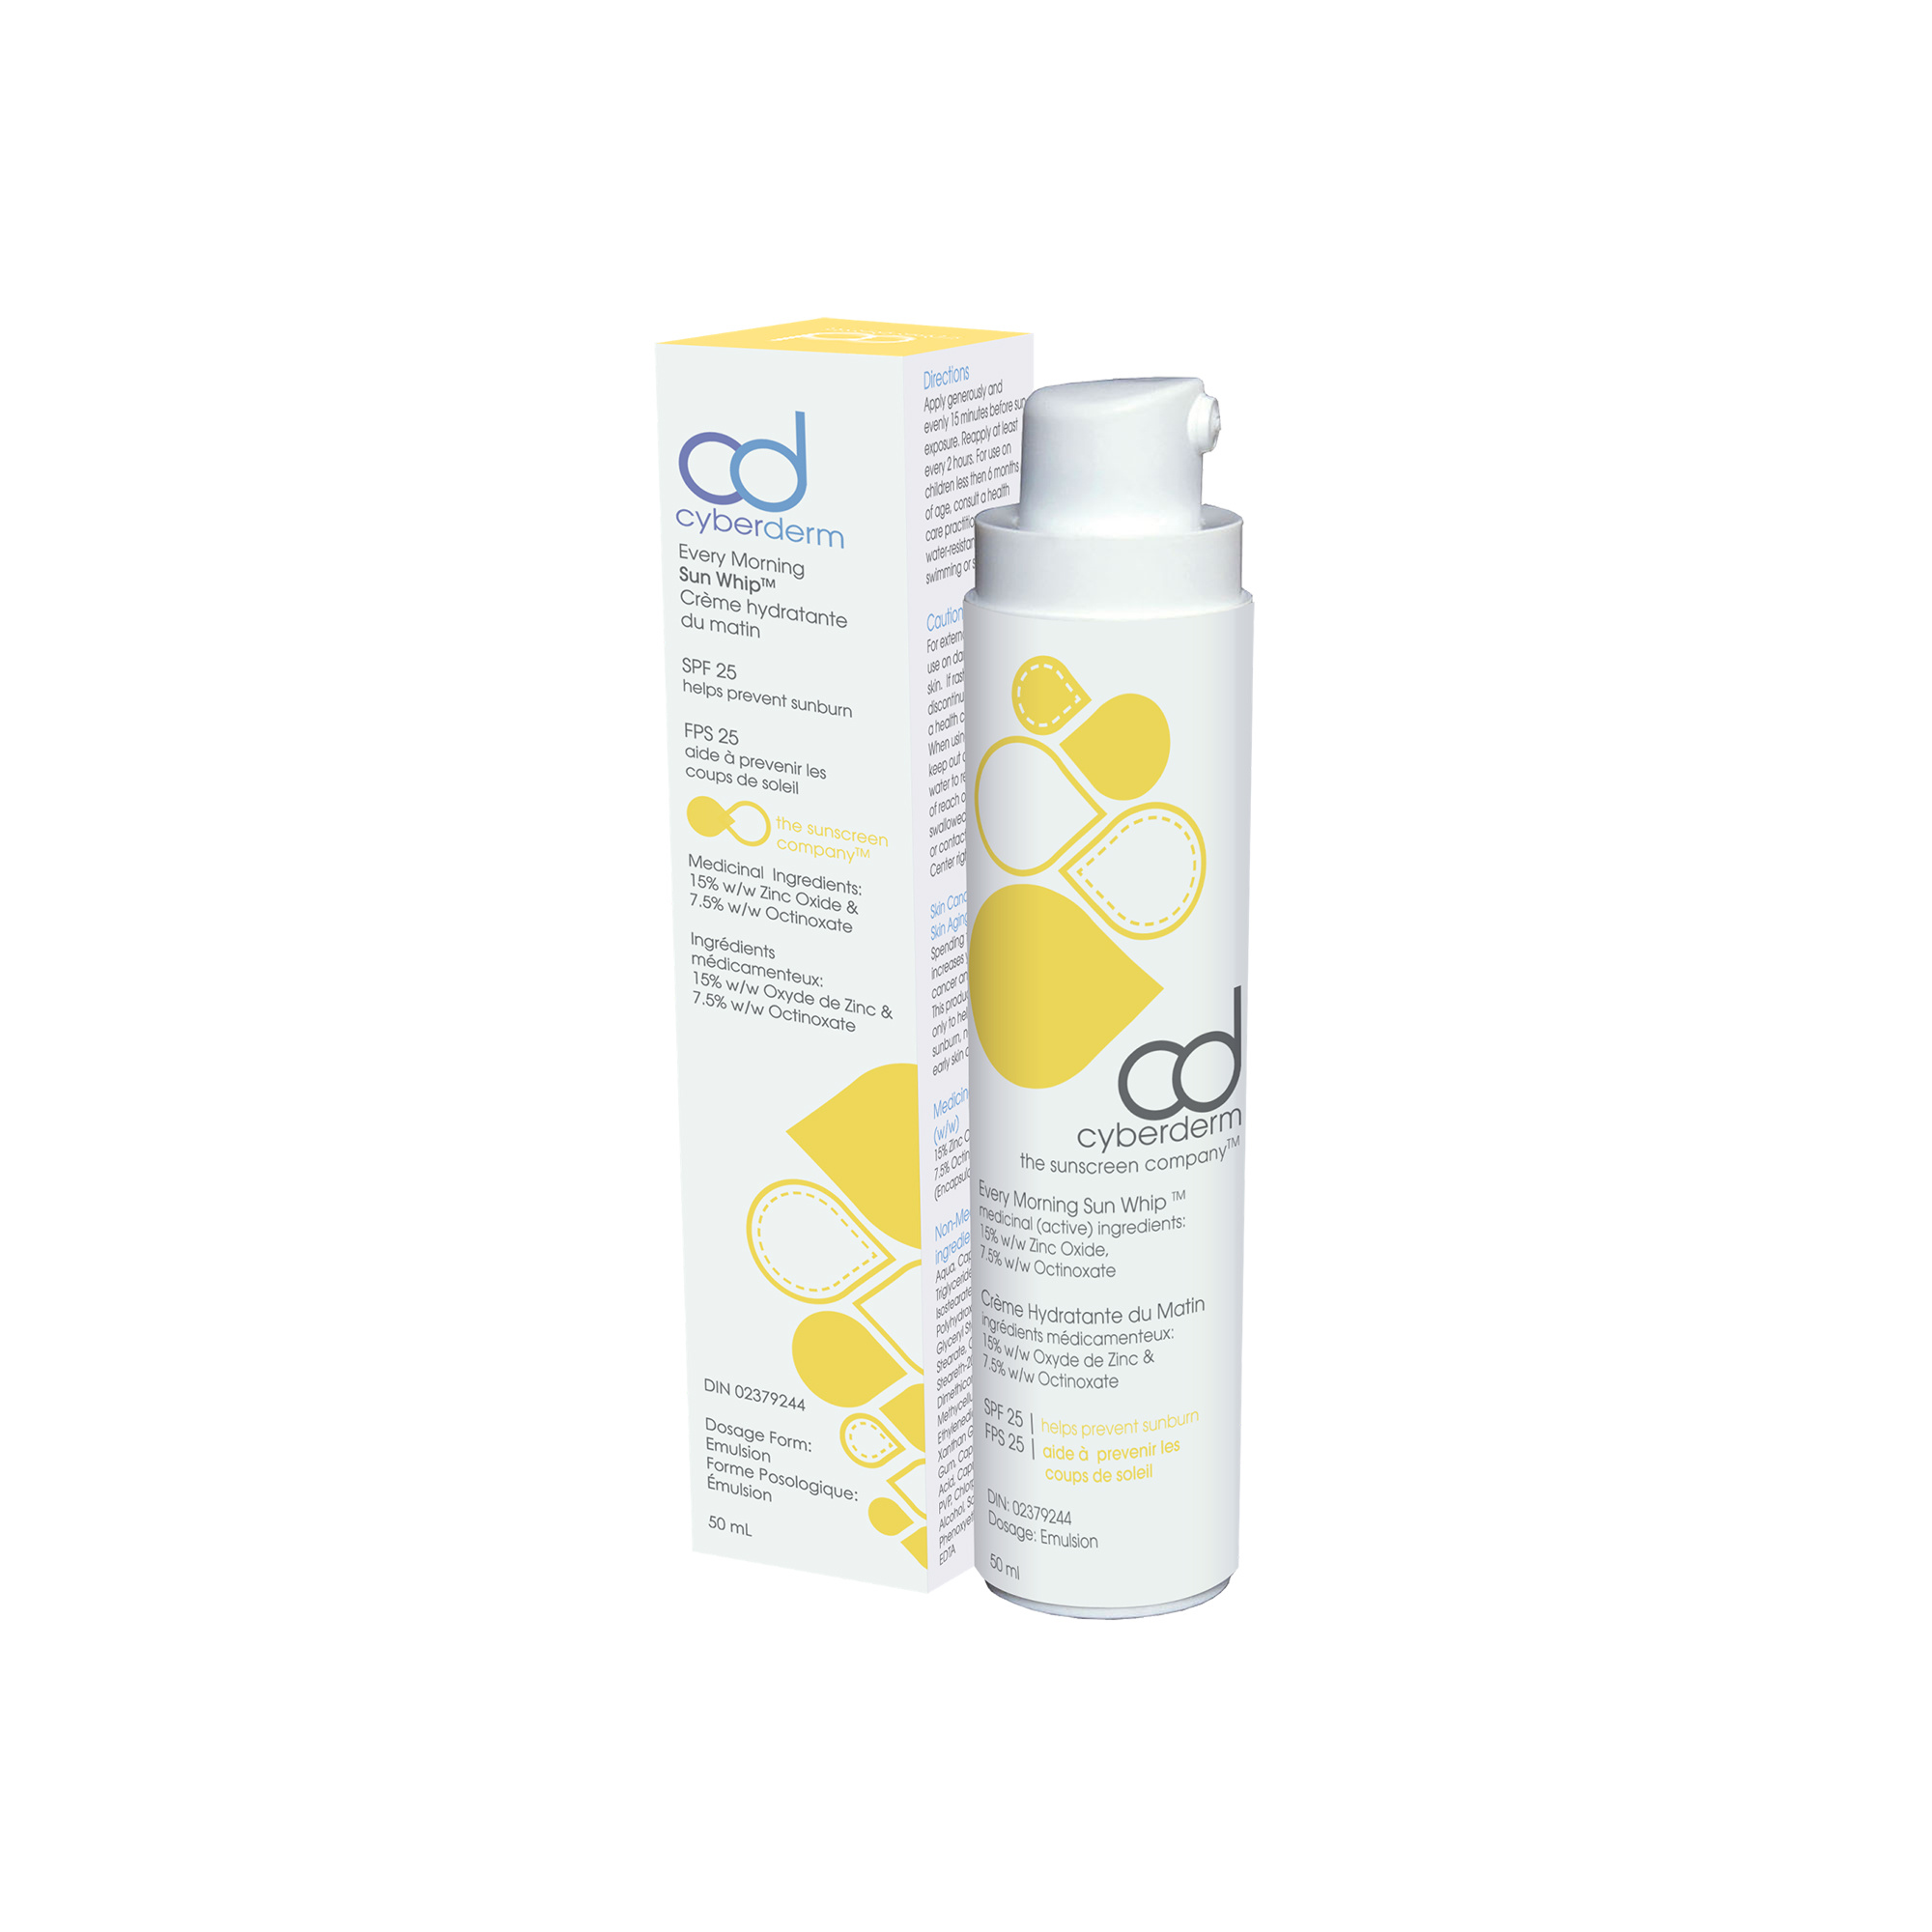 Cyberderm Every Morning Sun Whip SPF 25 (15% Zinc Oxide) - 50 ml